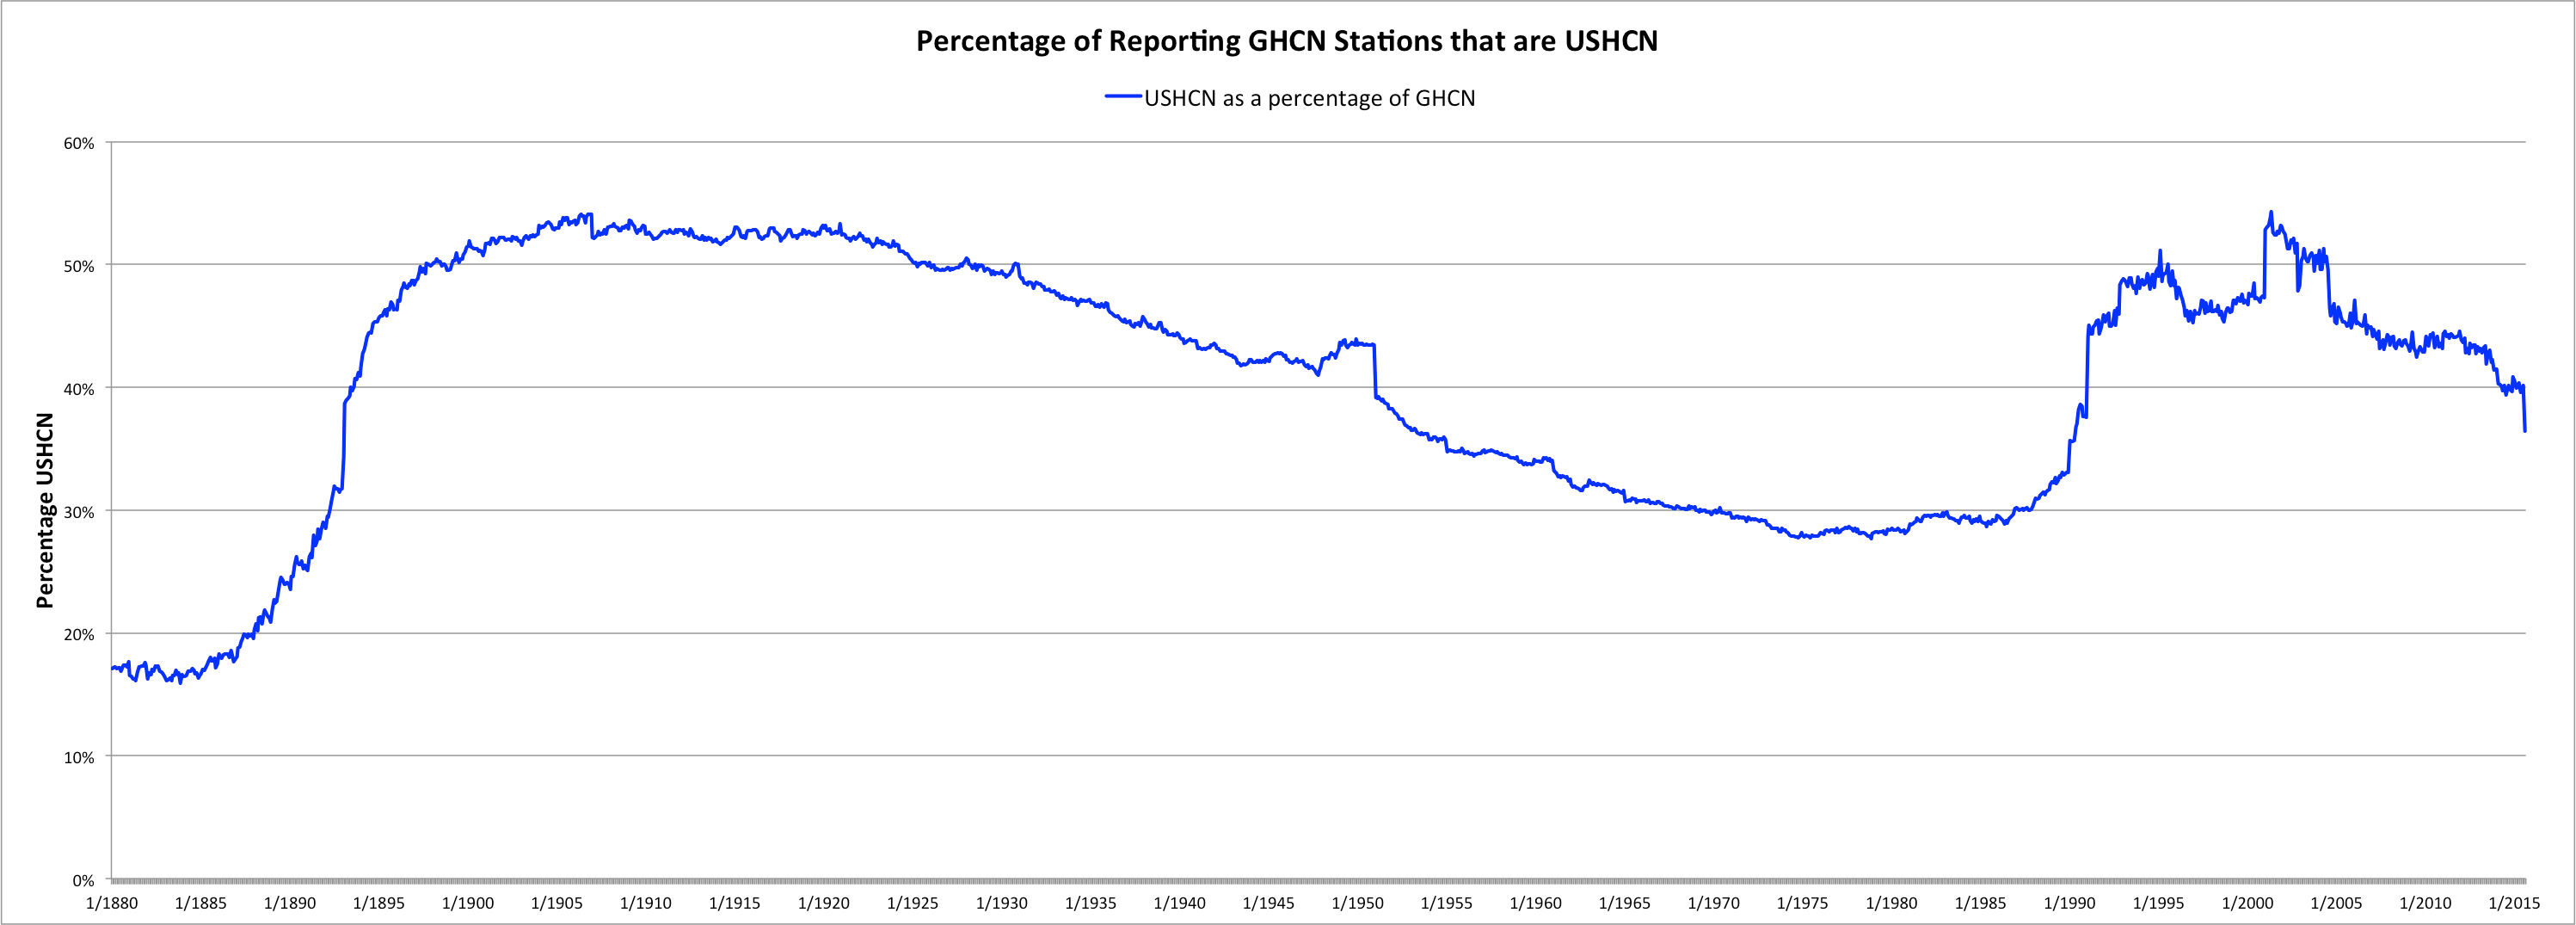 Approximately 92% (or 99%) of USHCN surface temperature